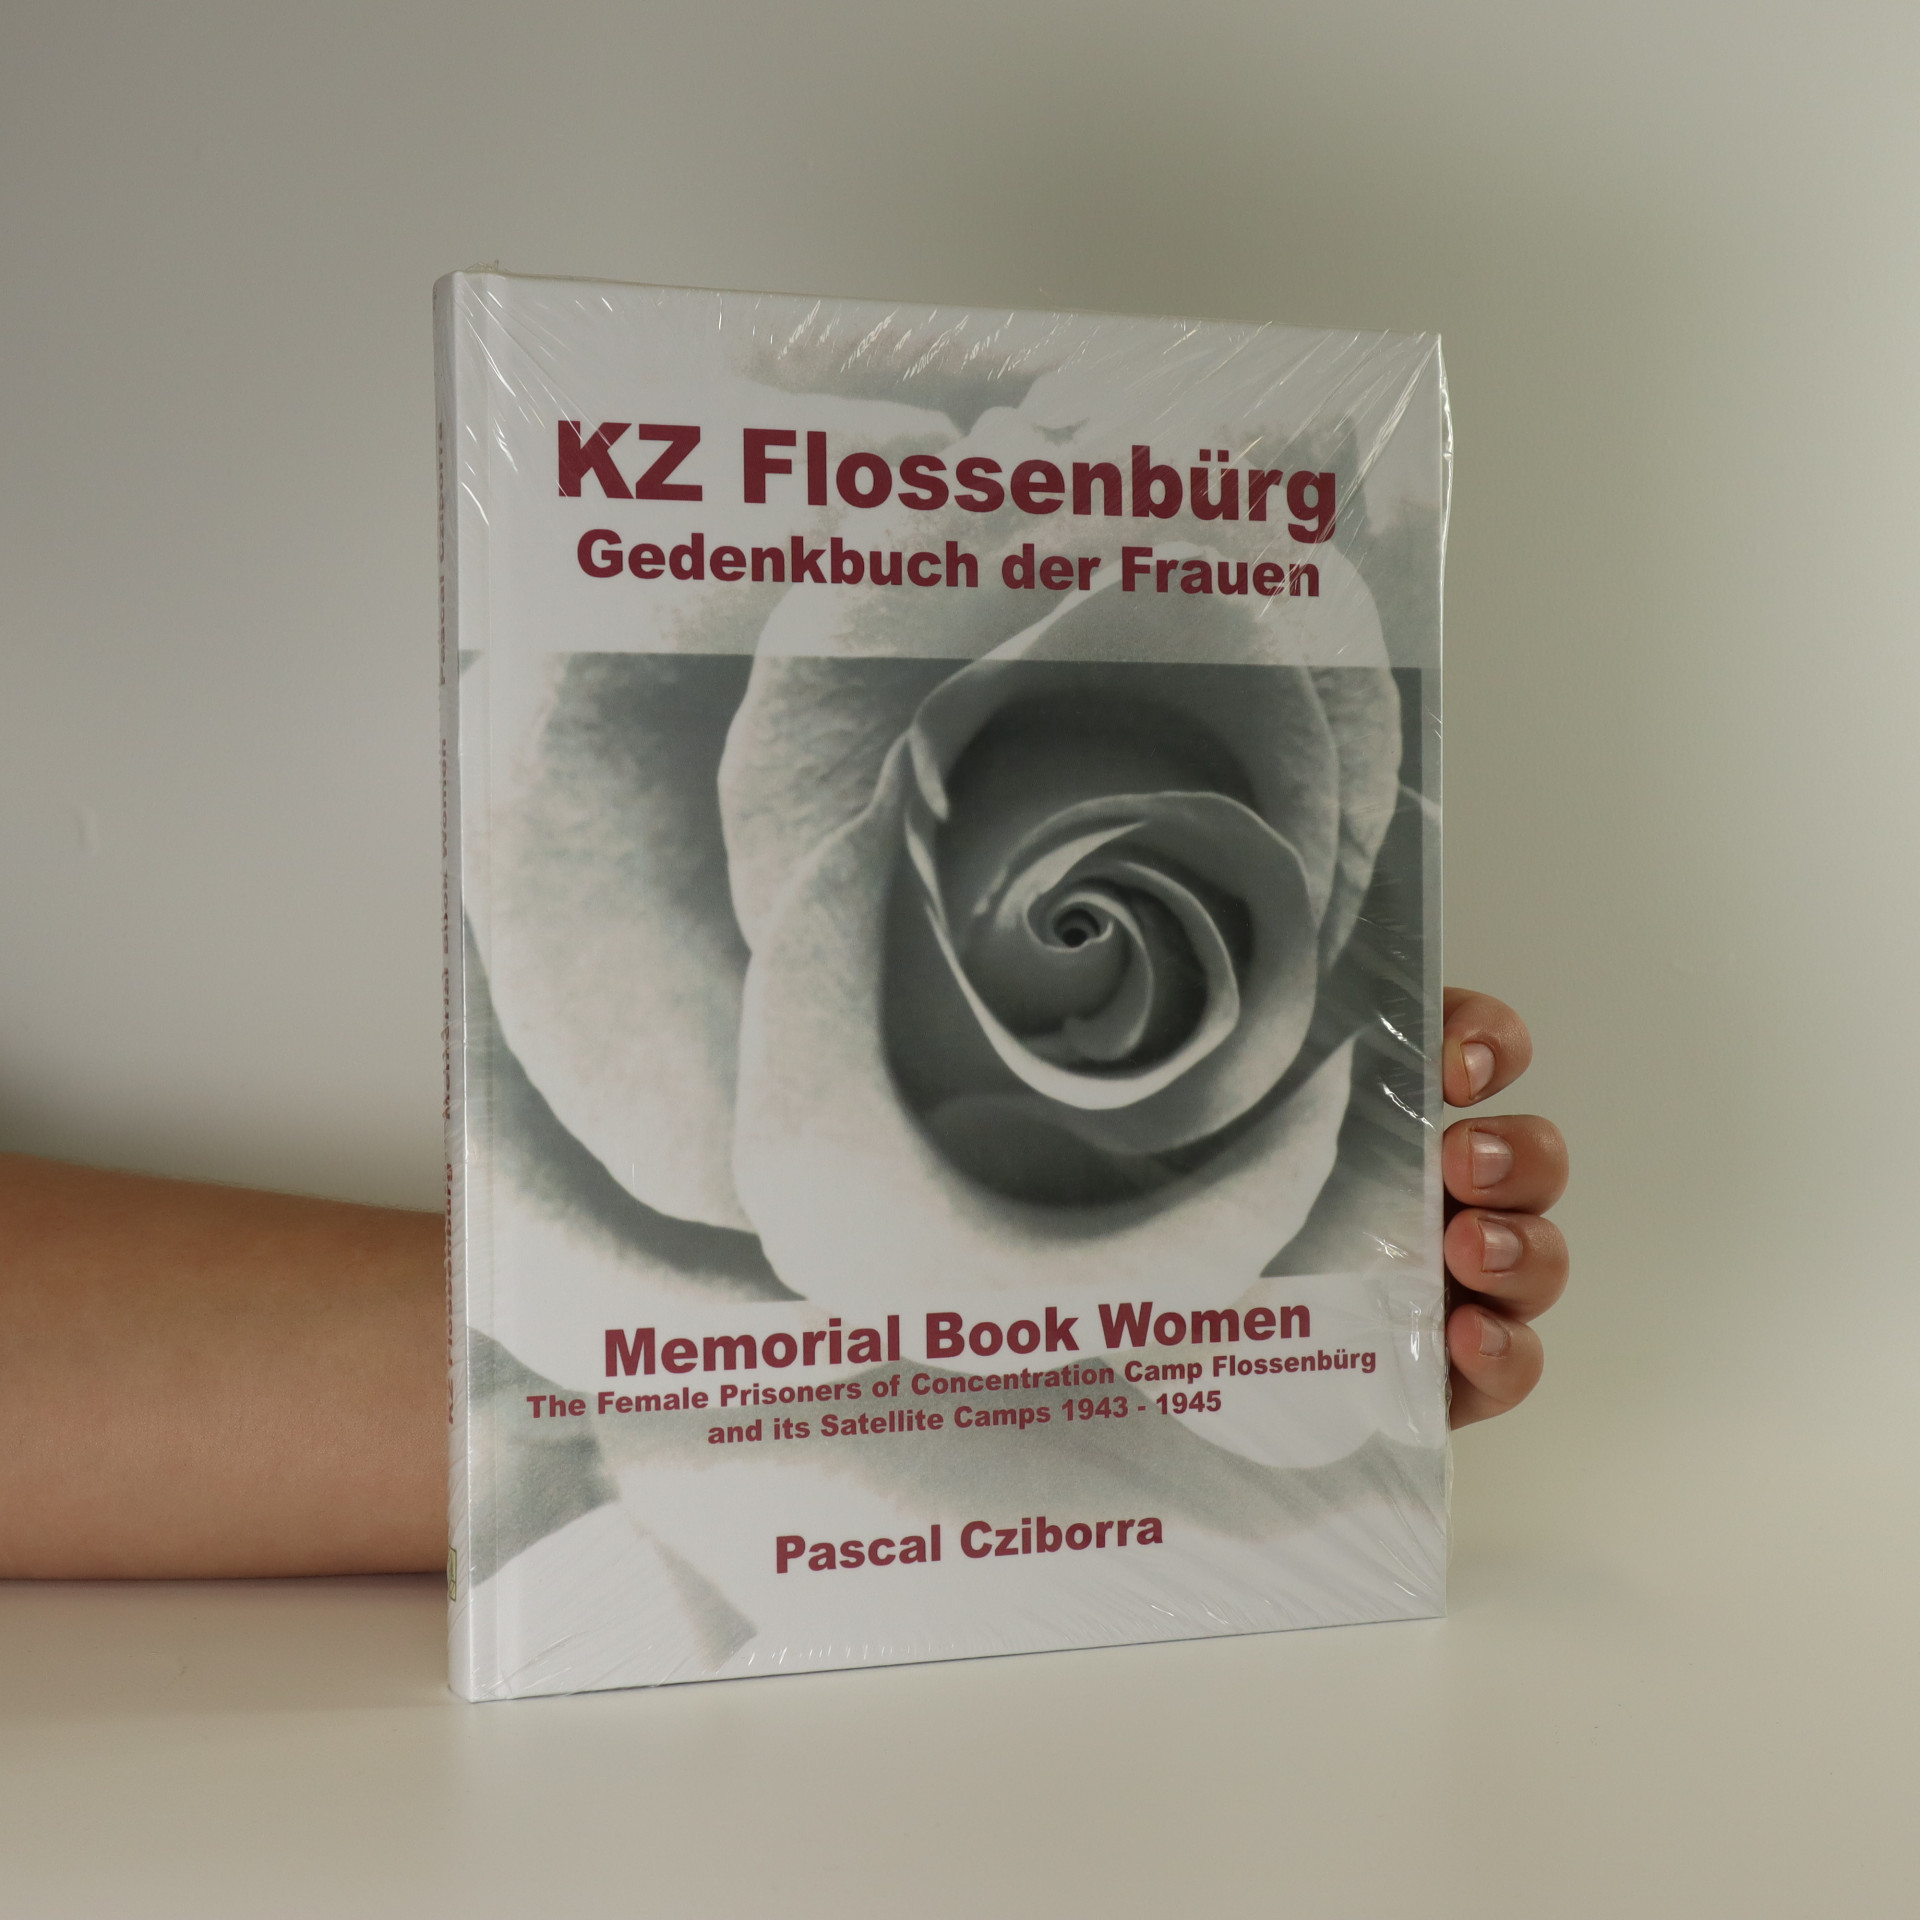 antikvární kniha KZ Flossenbürg. Memorial book women. The female prisoners at concentration camp Flossenbürg and its satellite camps 1943-1945, neuveden